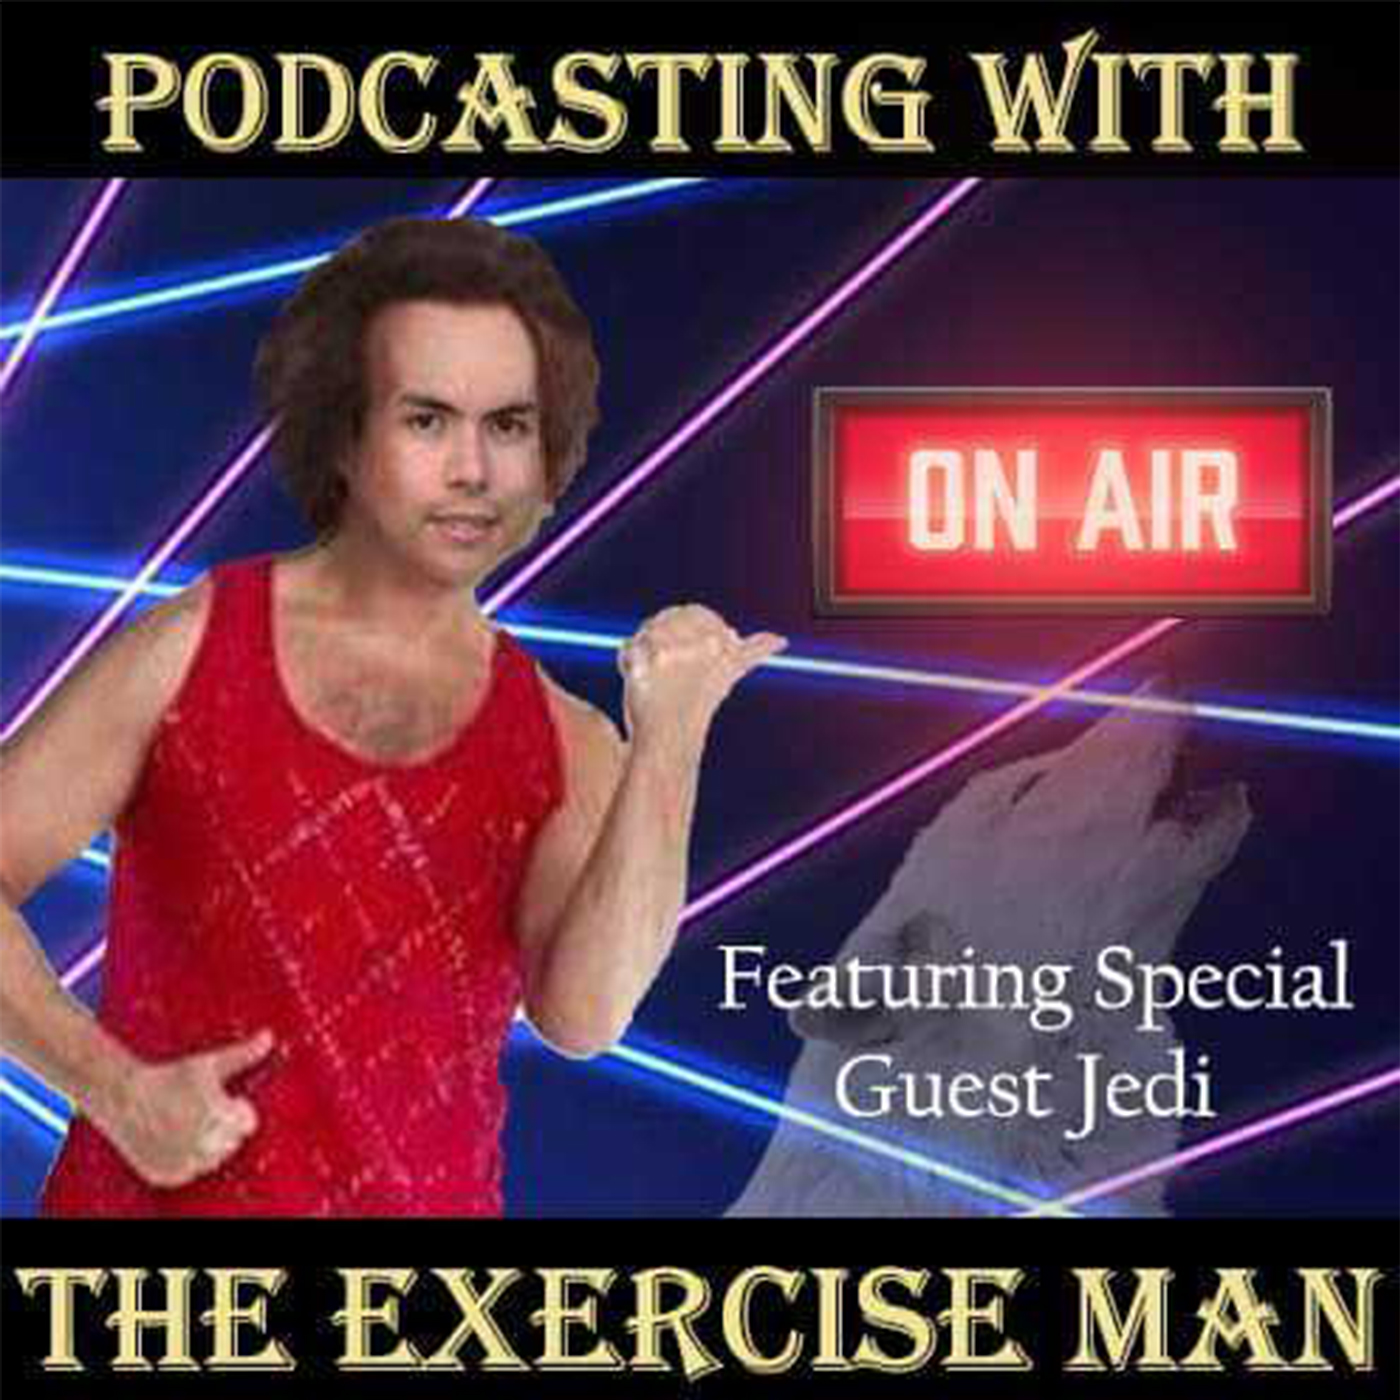 Podcasting with the Exercise Man